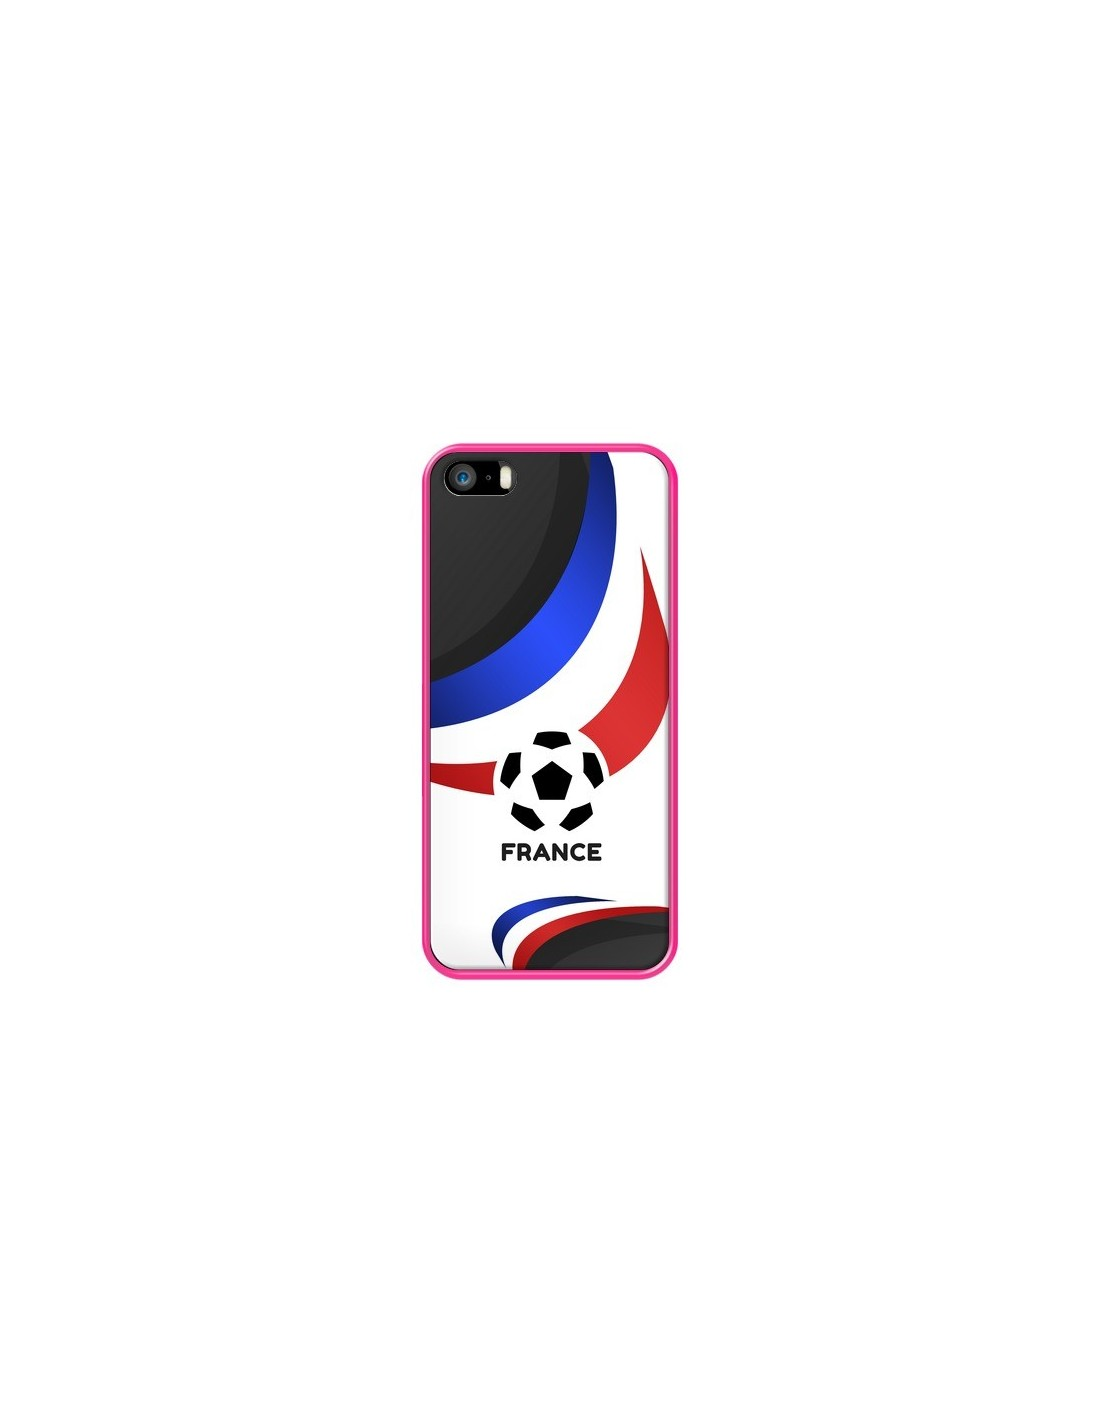 coque equipe france football pour iphone 5 5s et se madotta. Black Bedroom Furniture Sets. Home Design Ideas